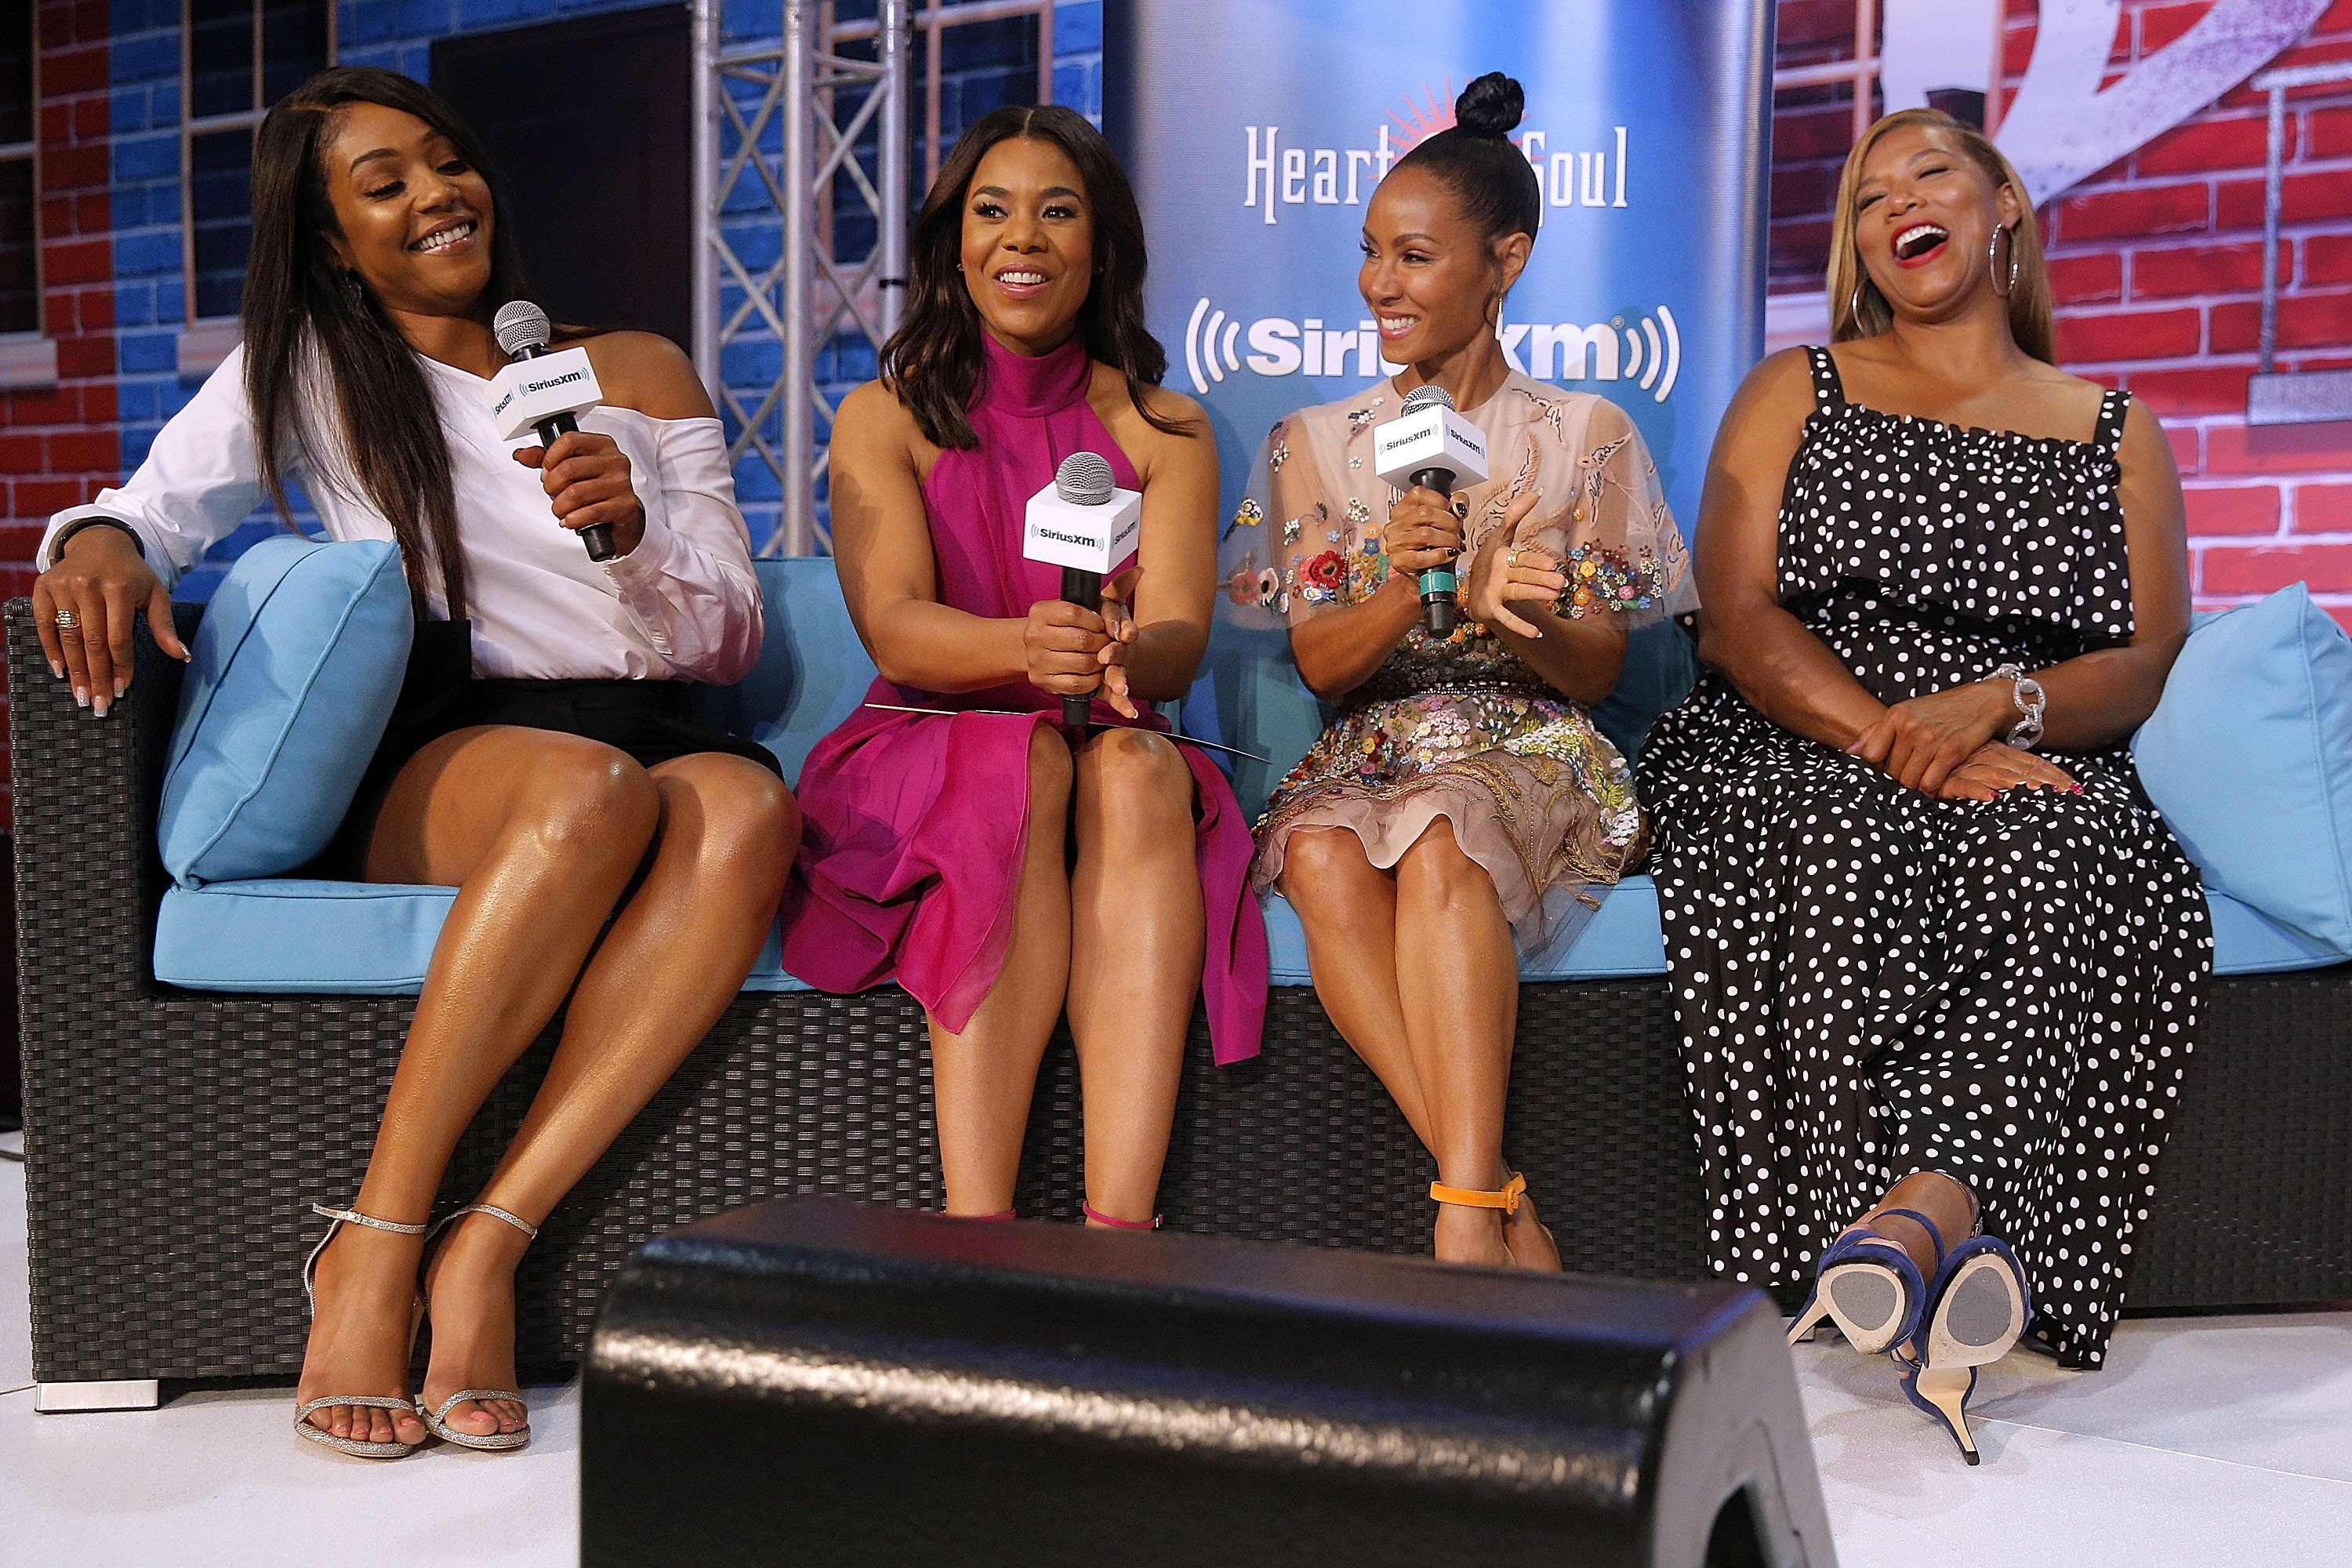 Girls Trip director hopes film's portrayal of black women does them justice